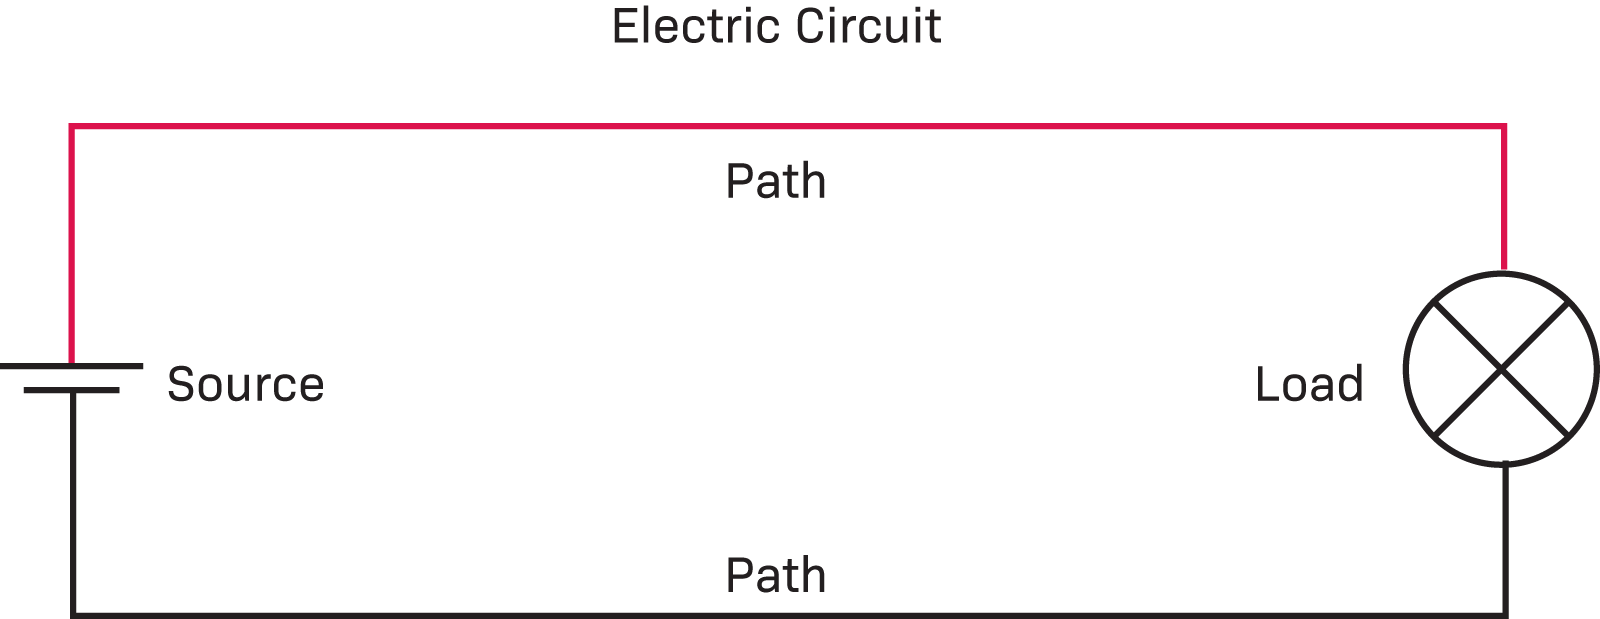 Five Circuits Diyode Magazine Electric Circuit Pictures Parts Of A